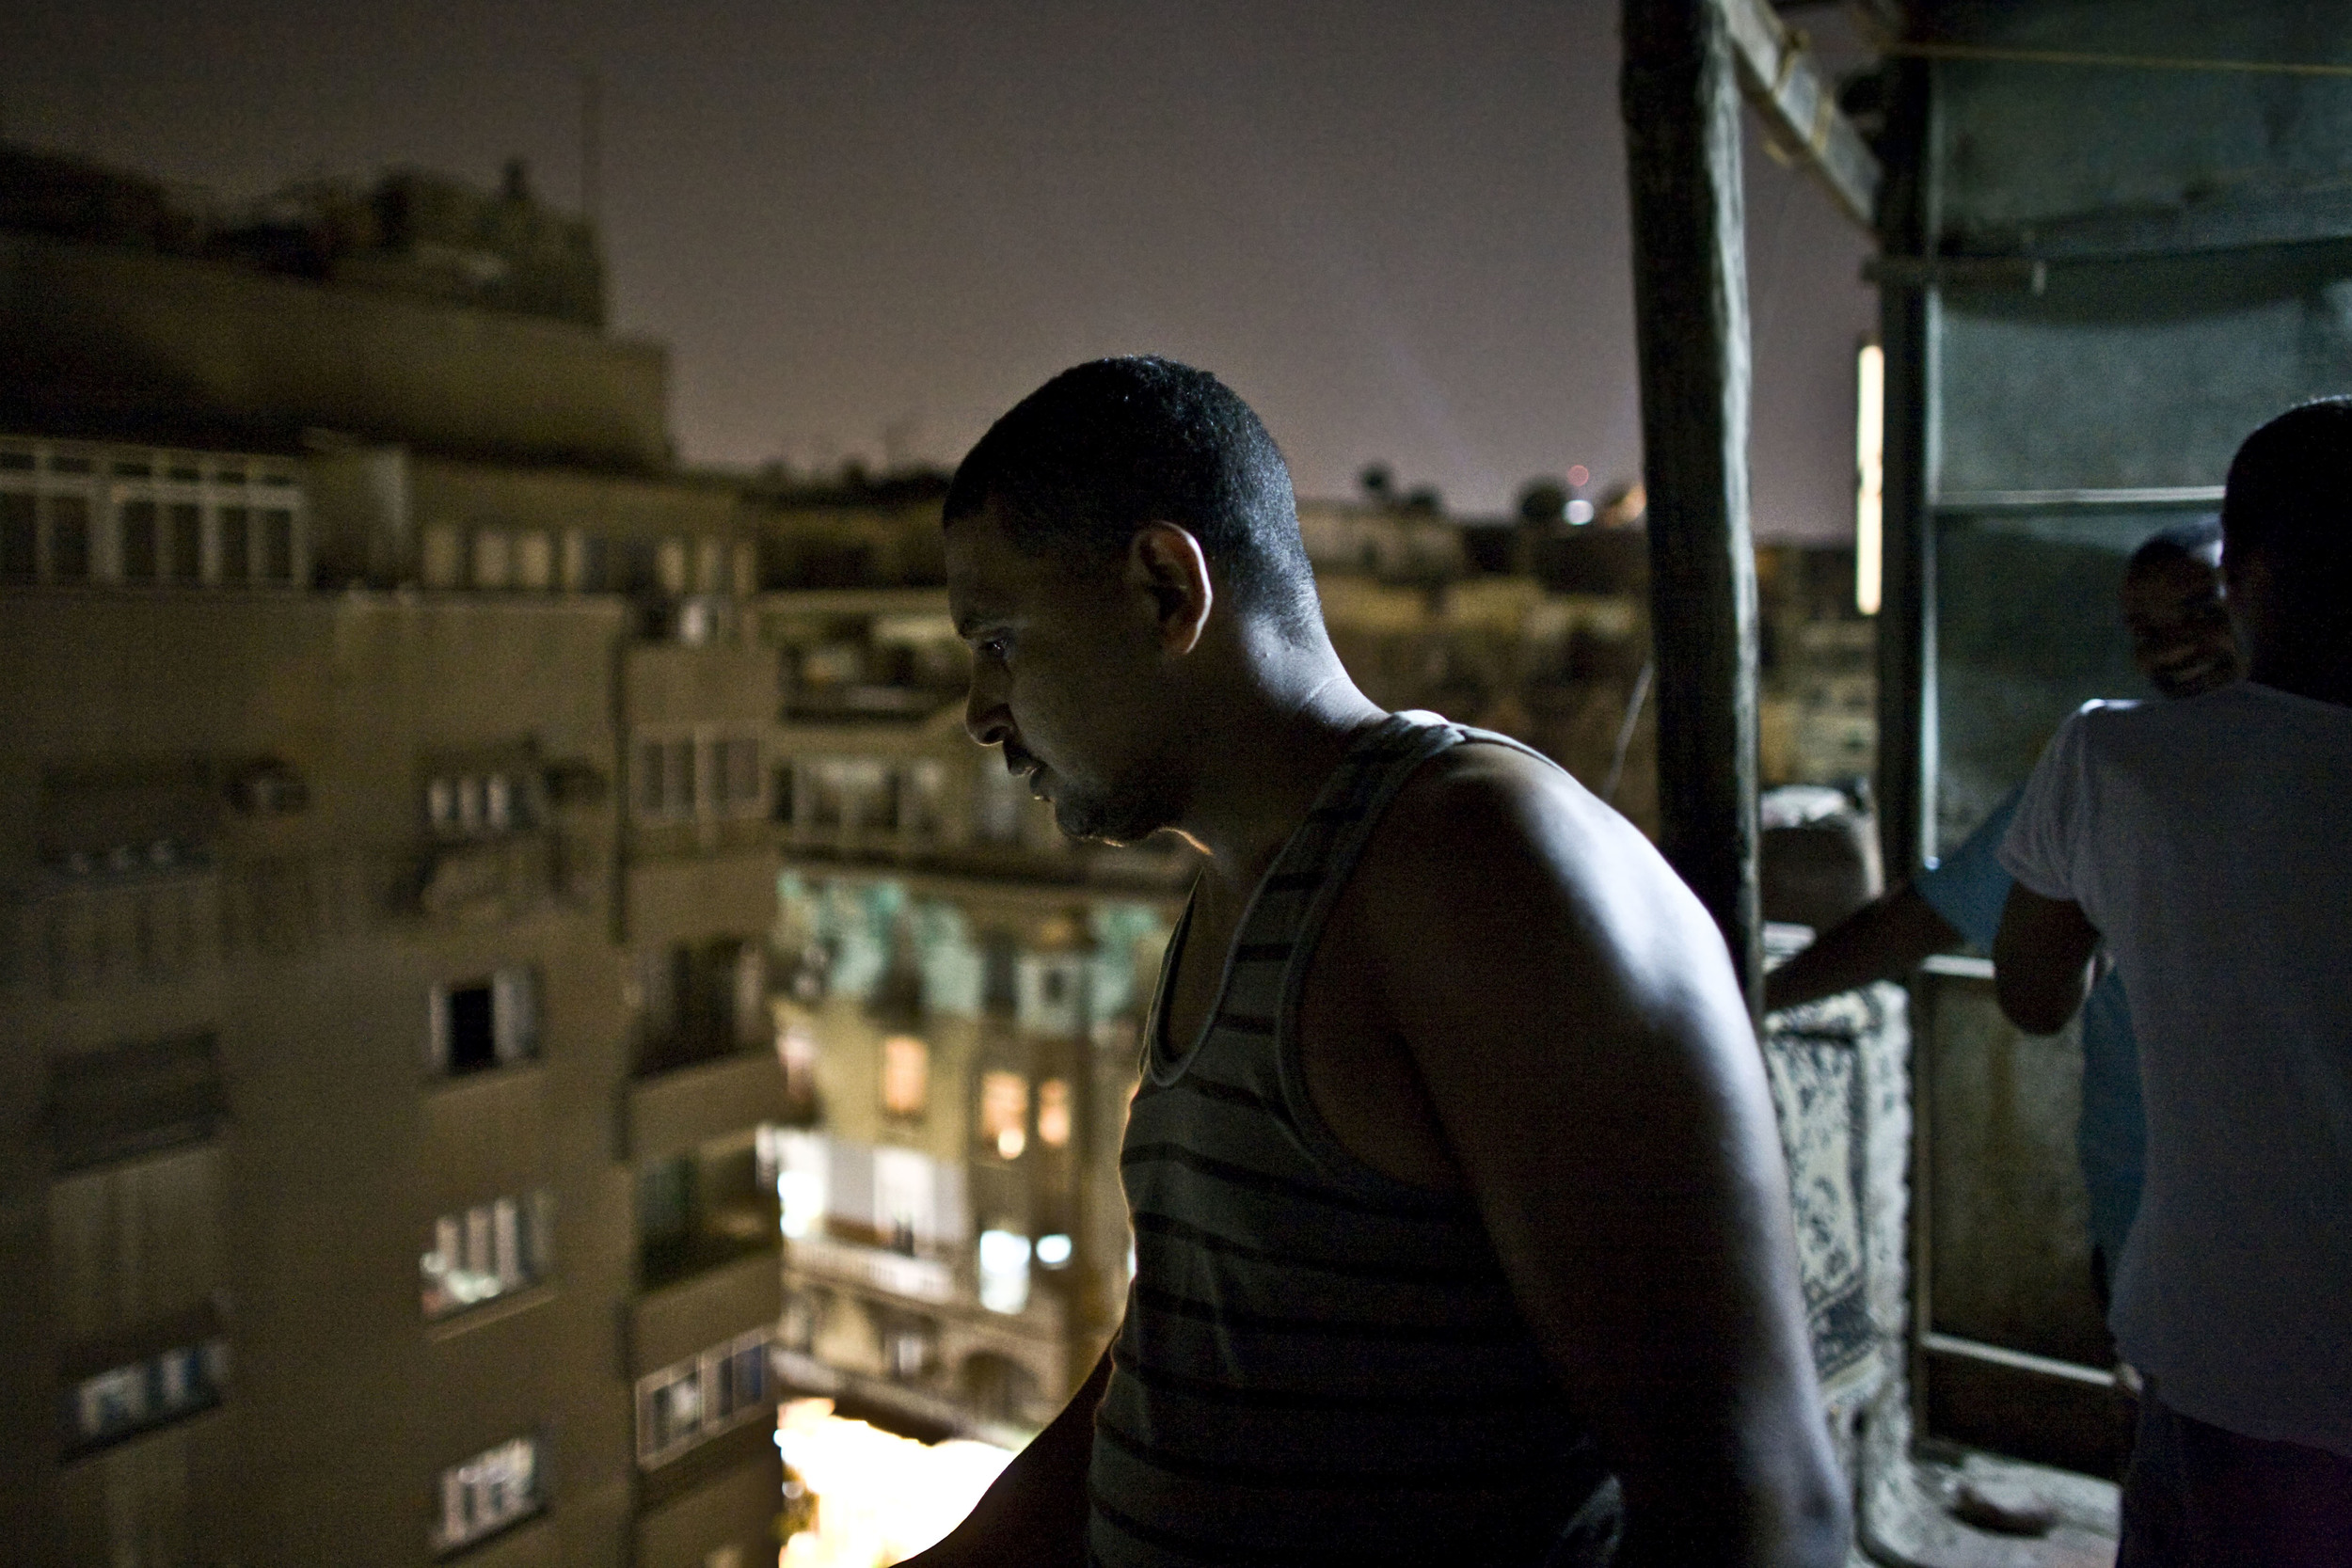 Egypt - Cairo - The people of the roofs (35).jpg